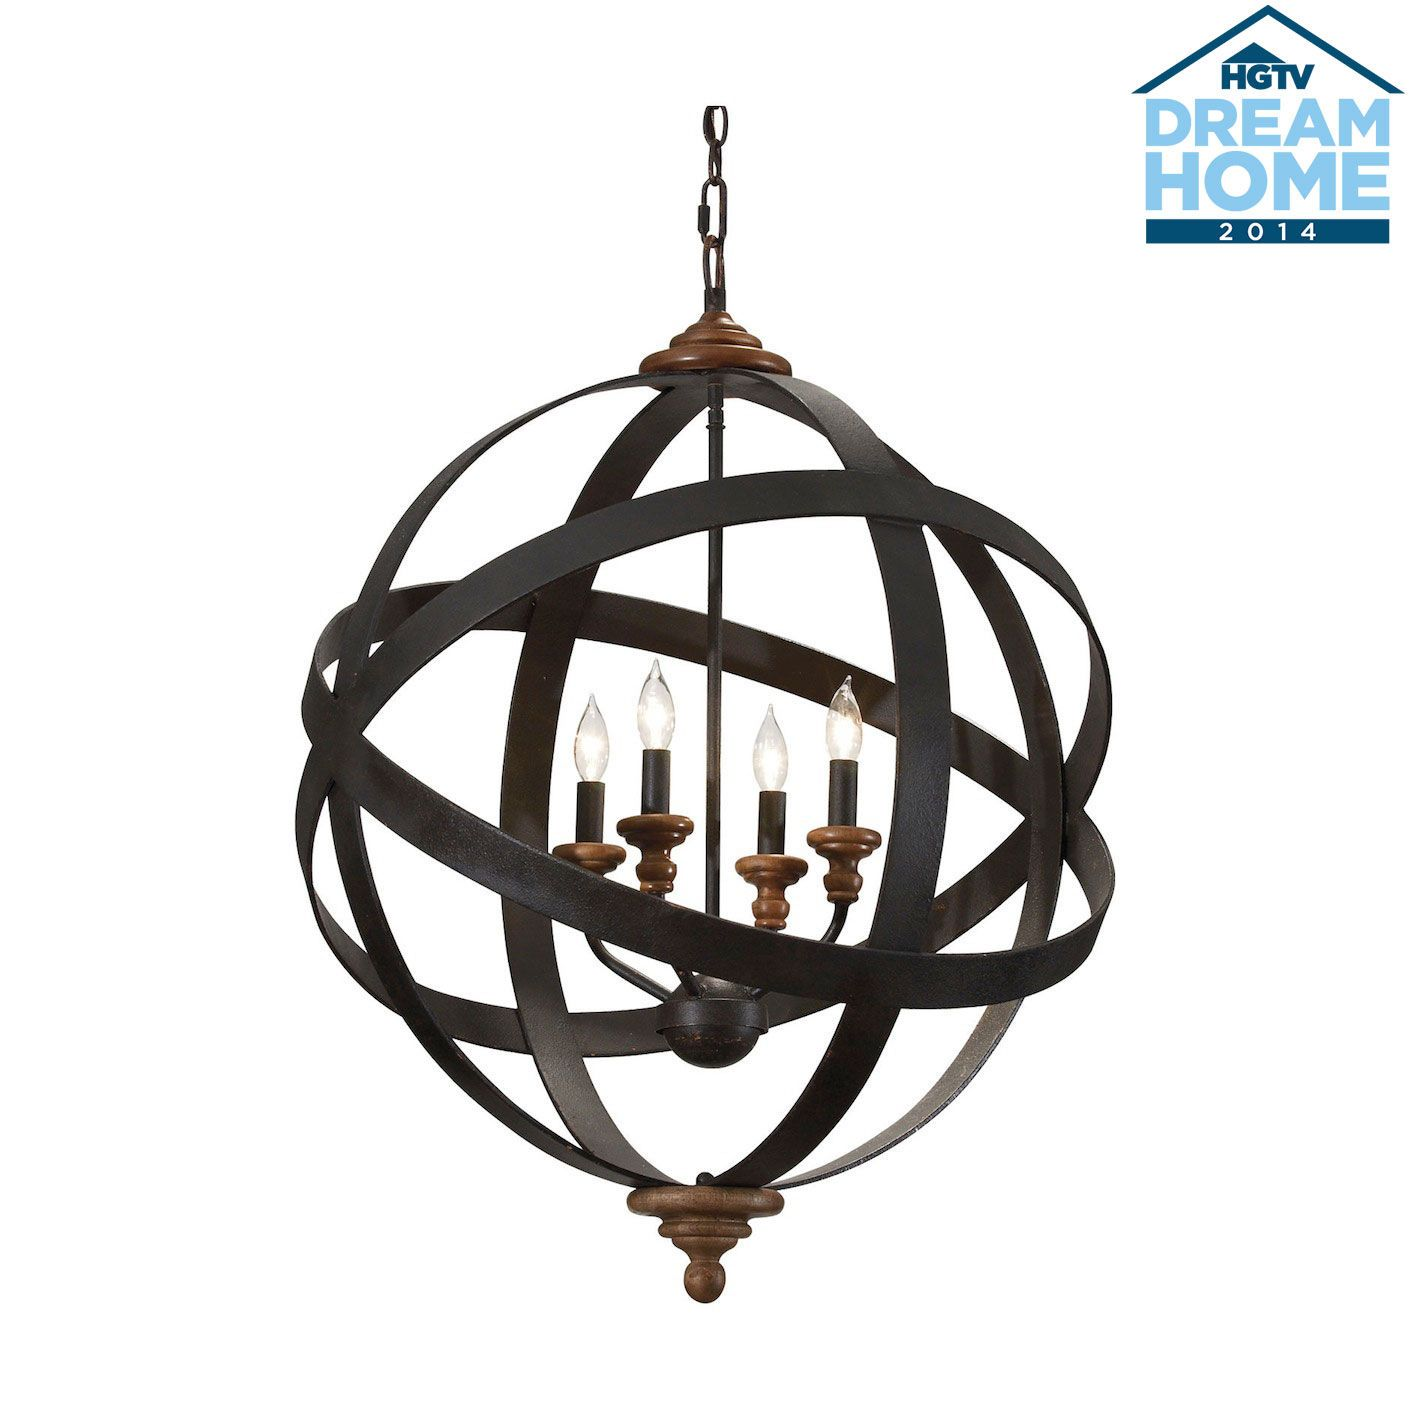 Four light armillary chandelier ethan allen us a smaller four light armillary chandelier ethan allen us a smaller scale for arubaitofo Image collections